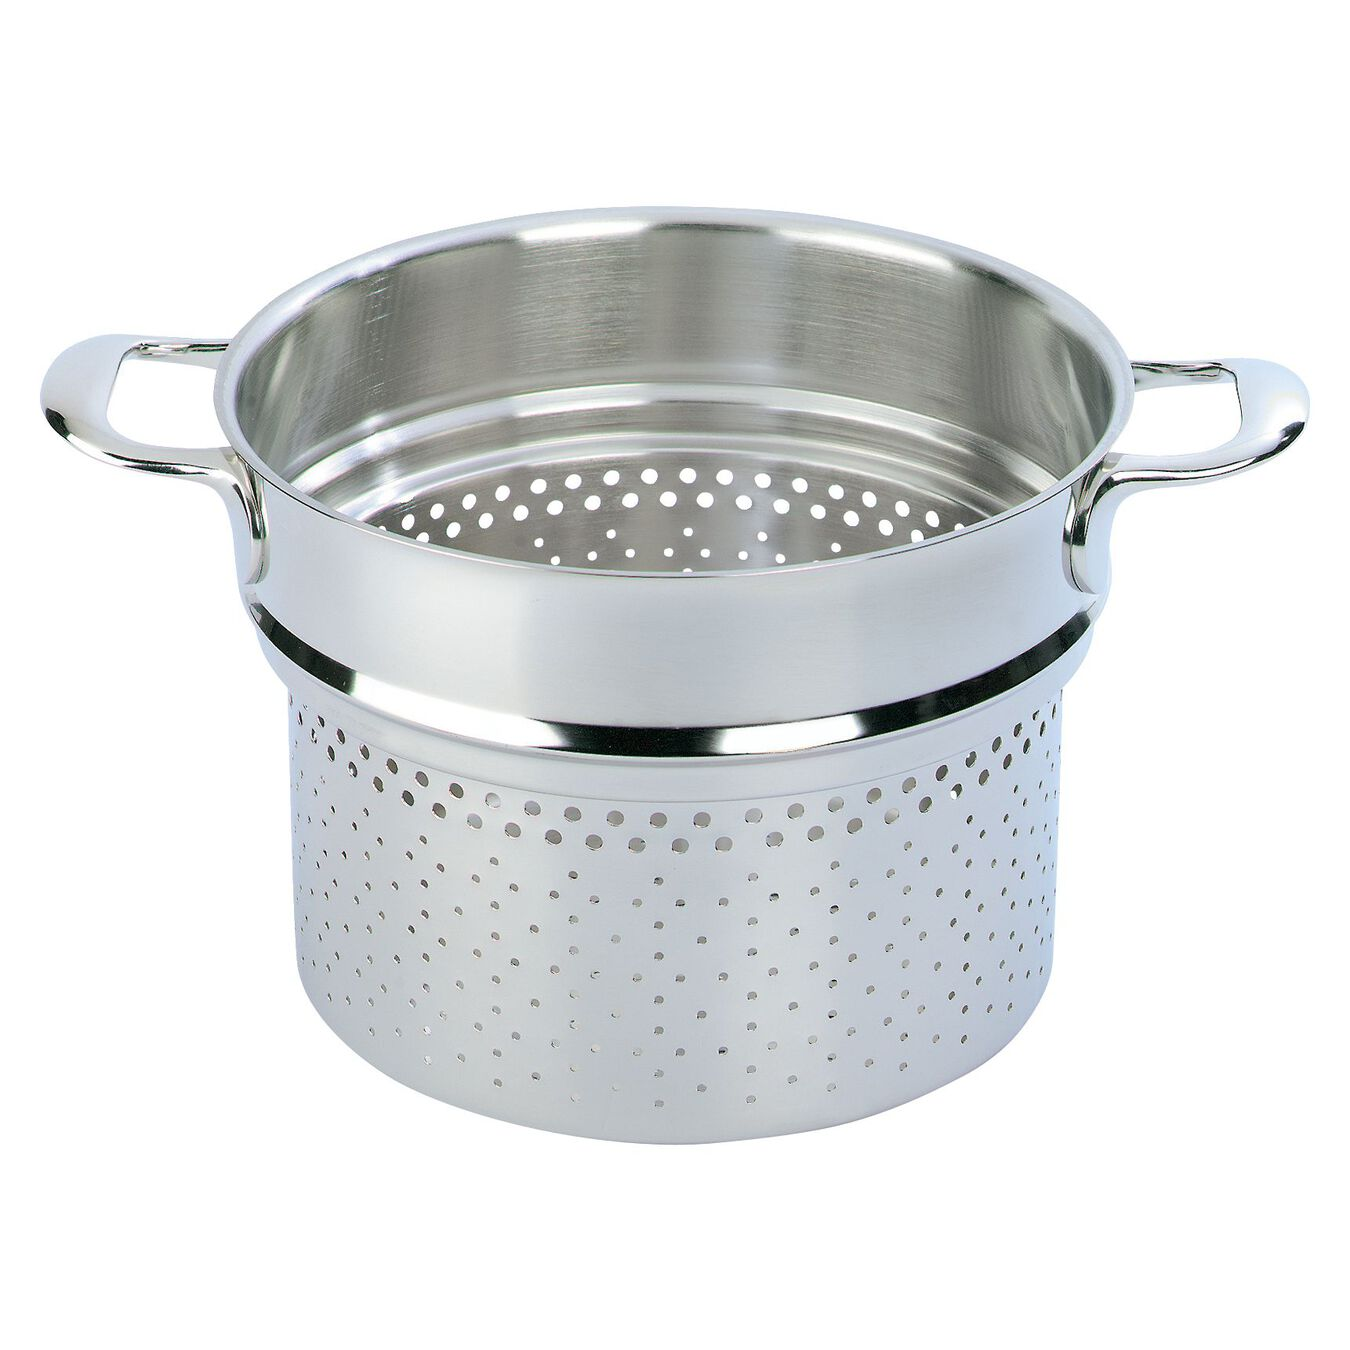 20 cm 18/10 Stainless Steel Pasta insert,,large 1